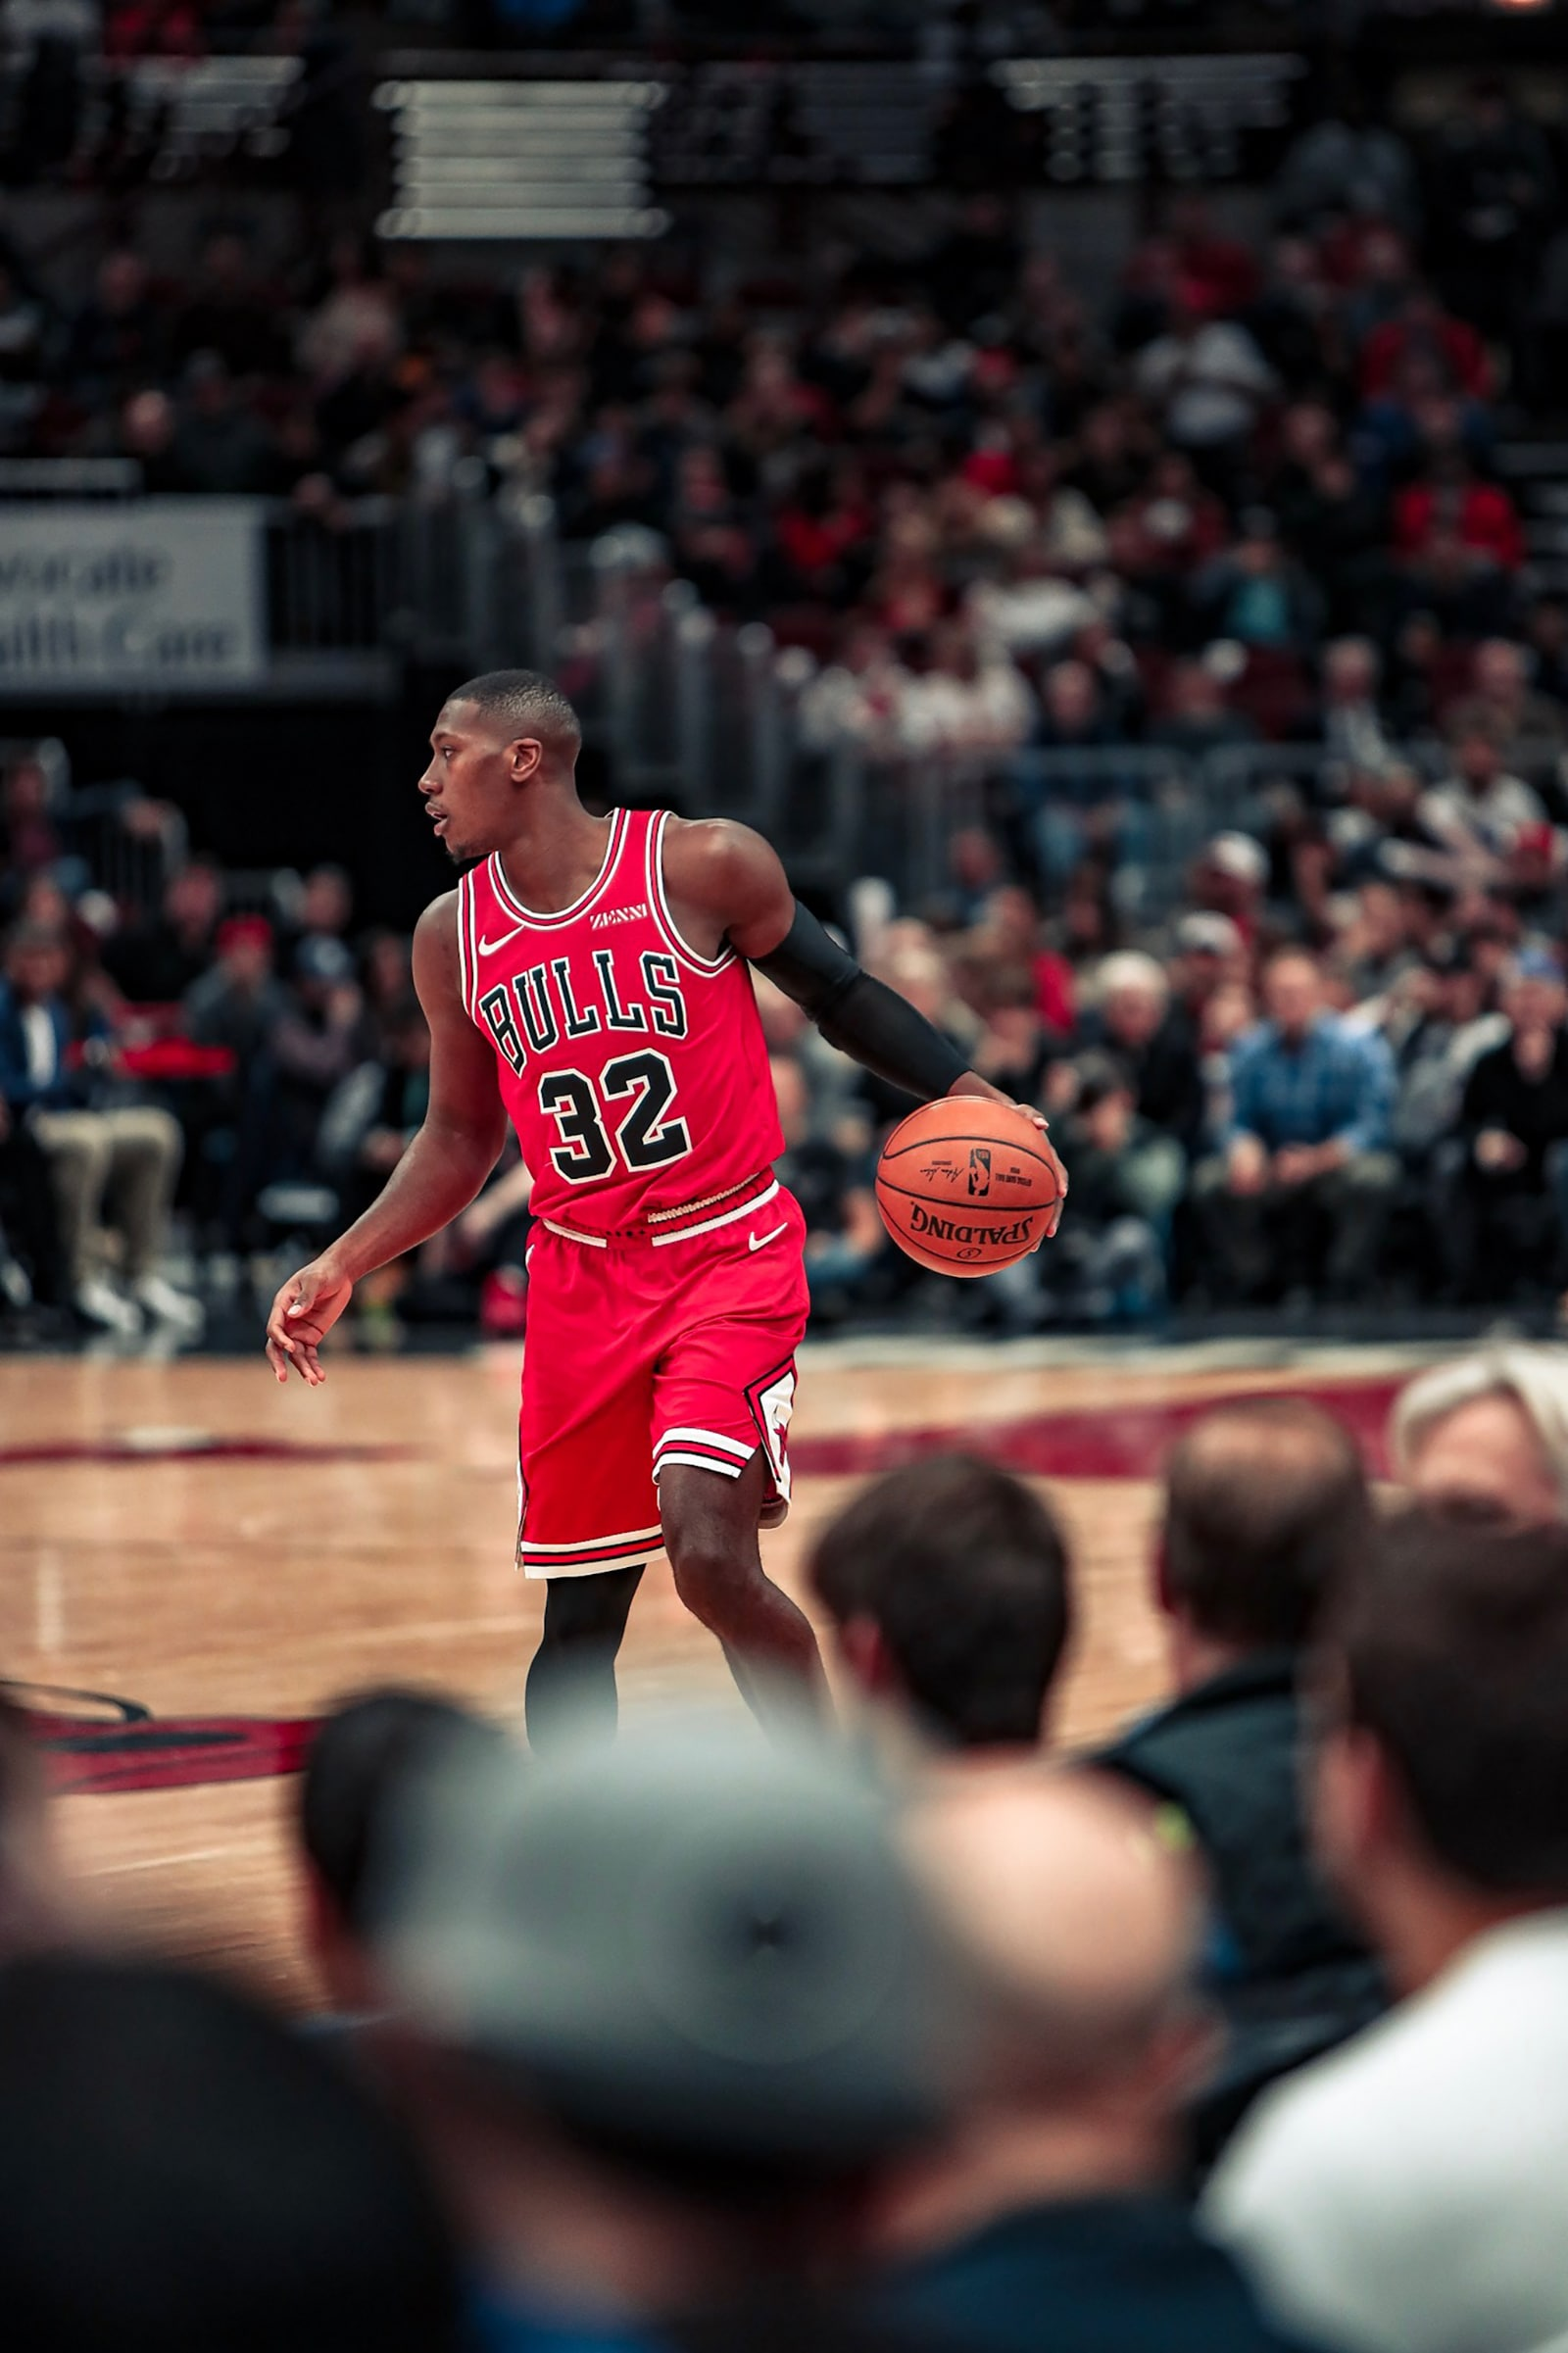 Kris Dunn Brings the Ball Up the Floor